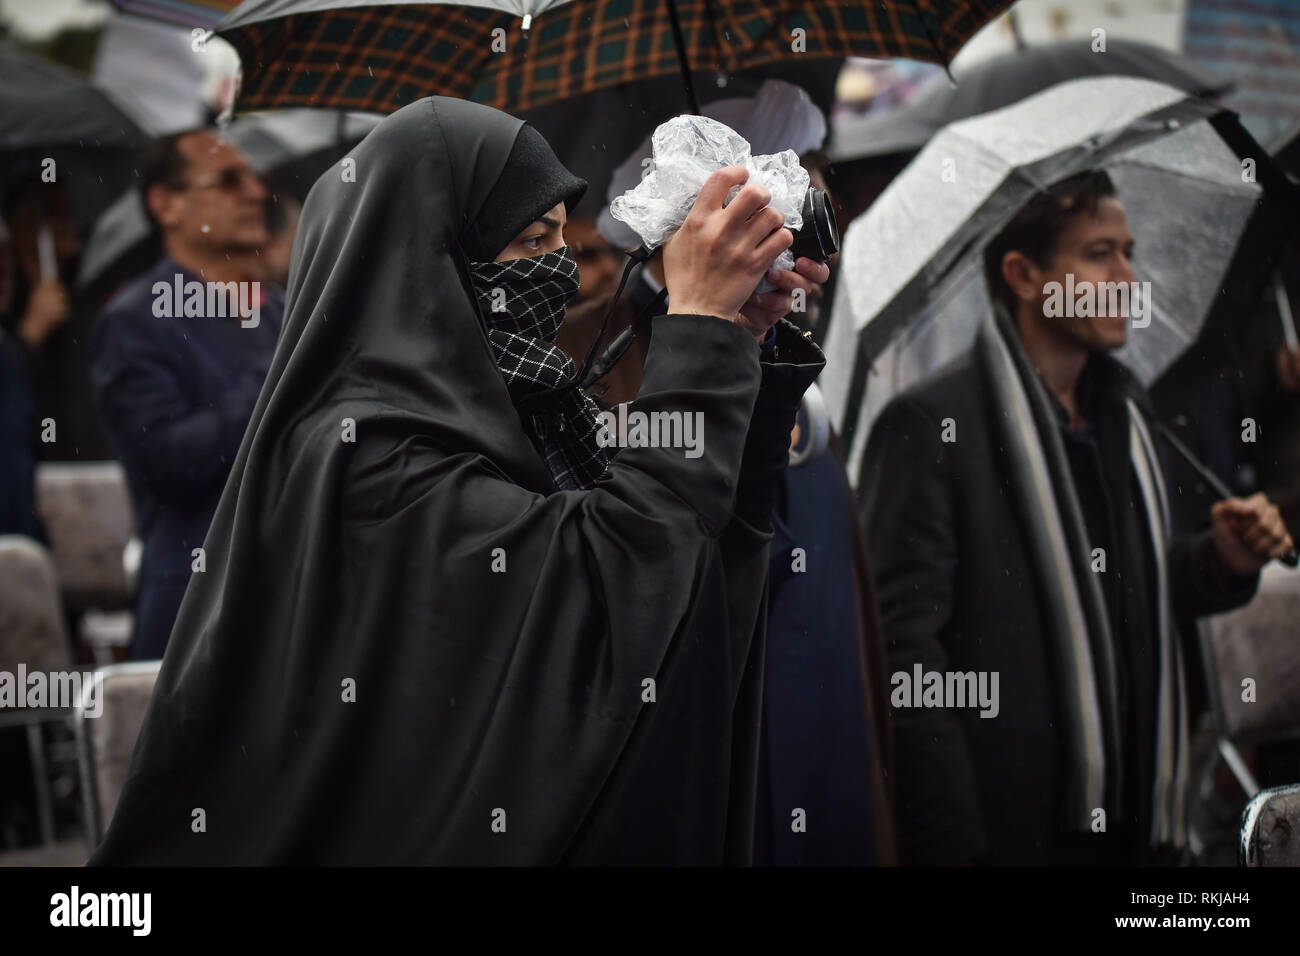 An Iranian photographer girl is shooting at 40th anniversary of Iranian revolution victory. Iranians attend a ceremony celebrating the 40th anniversary of their Islamic Revolution, Shiraz city in Fars province, Iran, Monday. Feb. 11, 2019. Hundreds of thousands of people poured out onto the streets of Shiraz and other cities, towns and provinces across Iran, marking the date 40 years ago that is considered as victory day in the country's 1979 Islamic revolution. - Stock Image